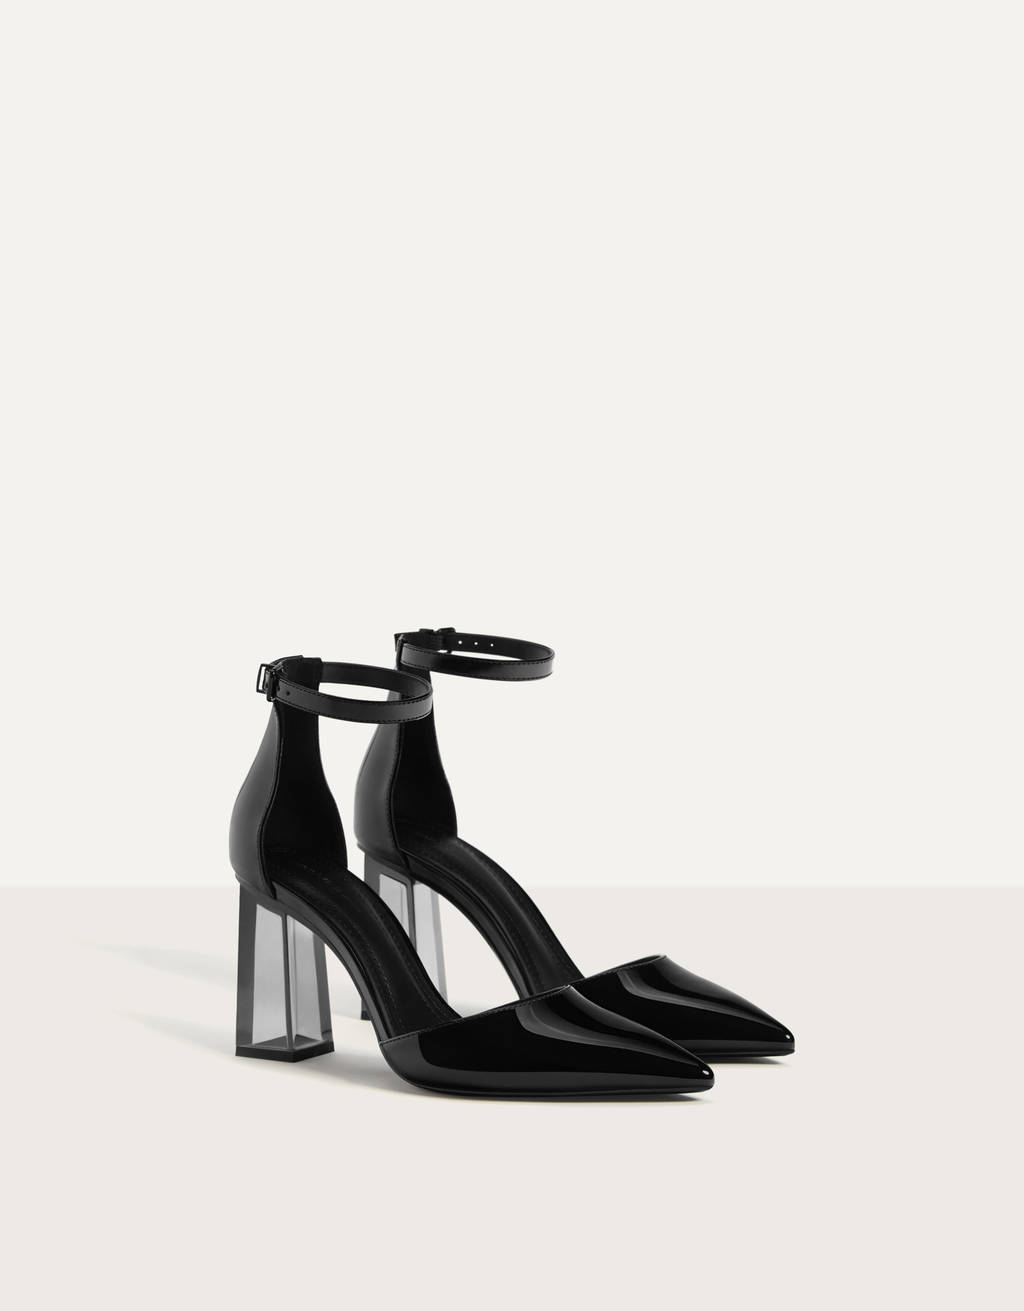 Shoes with methacrylate heels